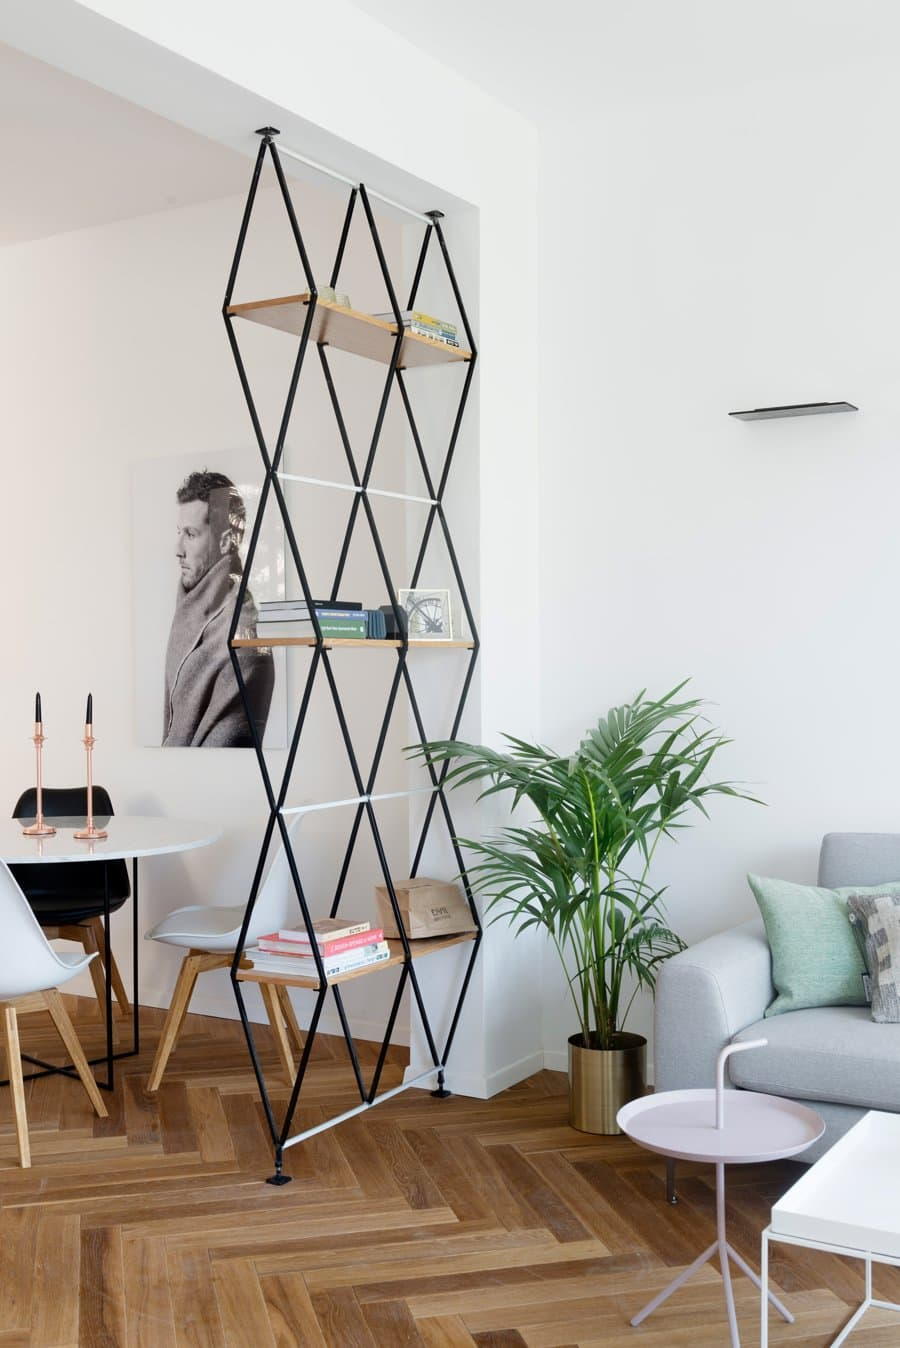 Open Shelving with Geometric Forms